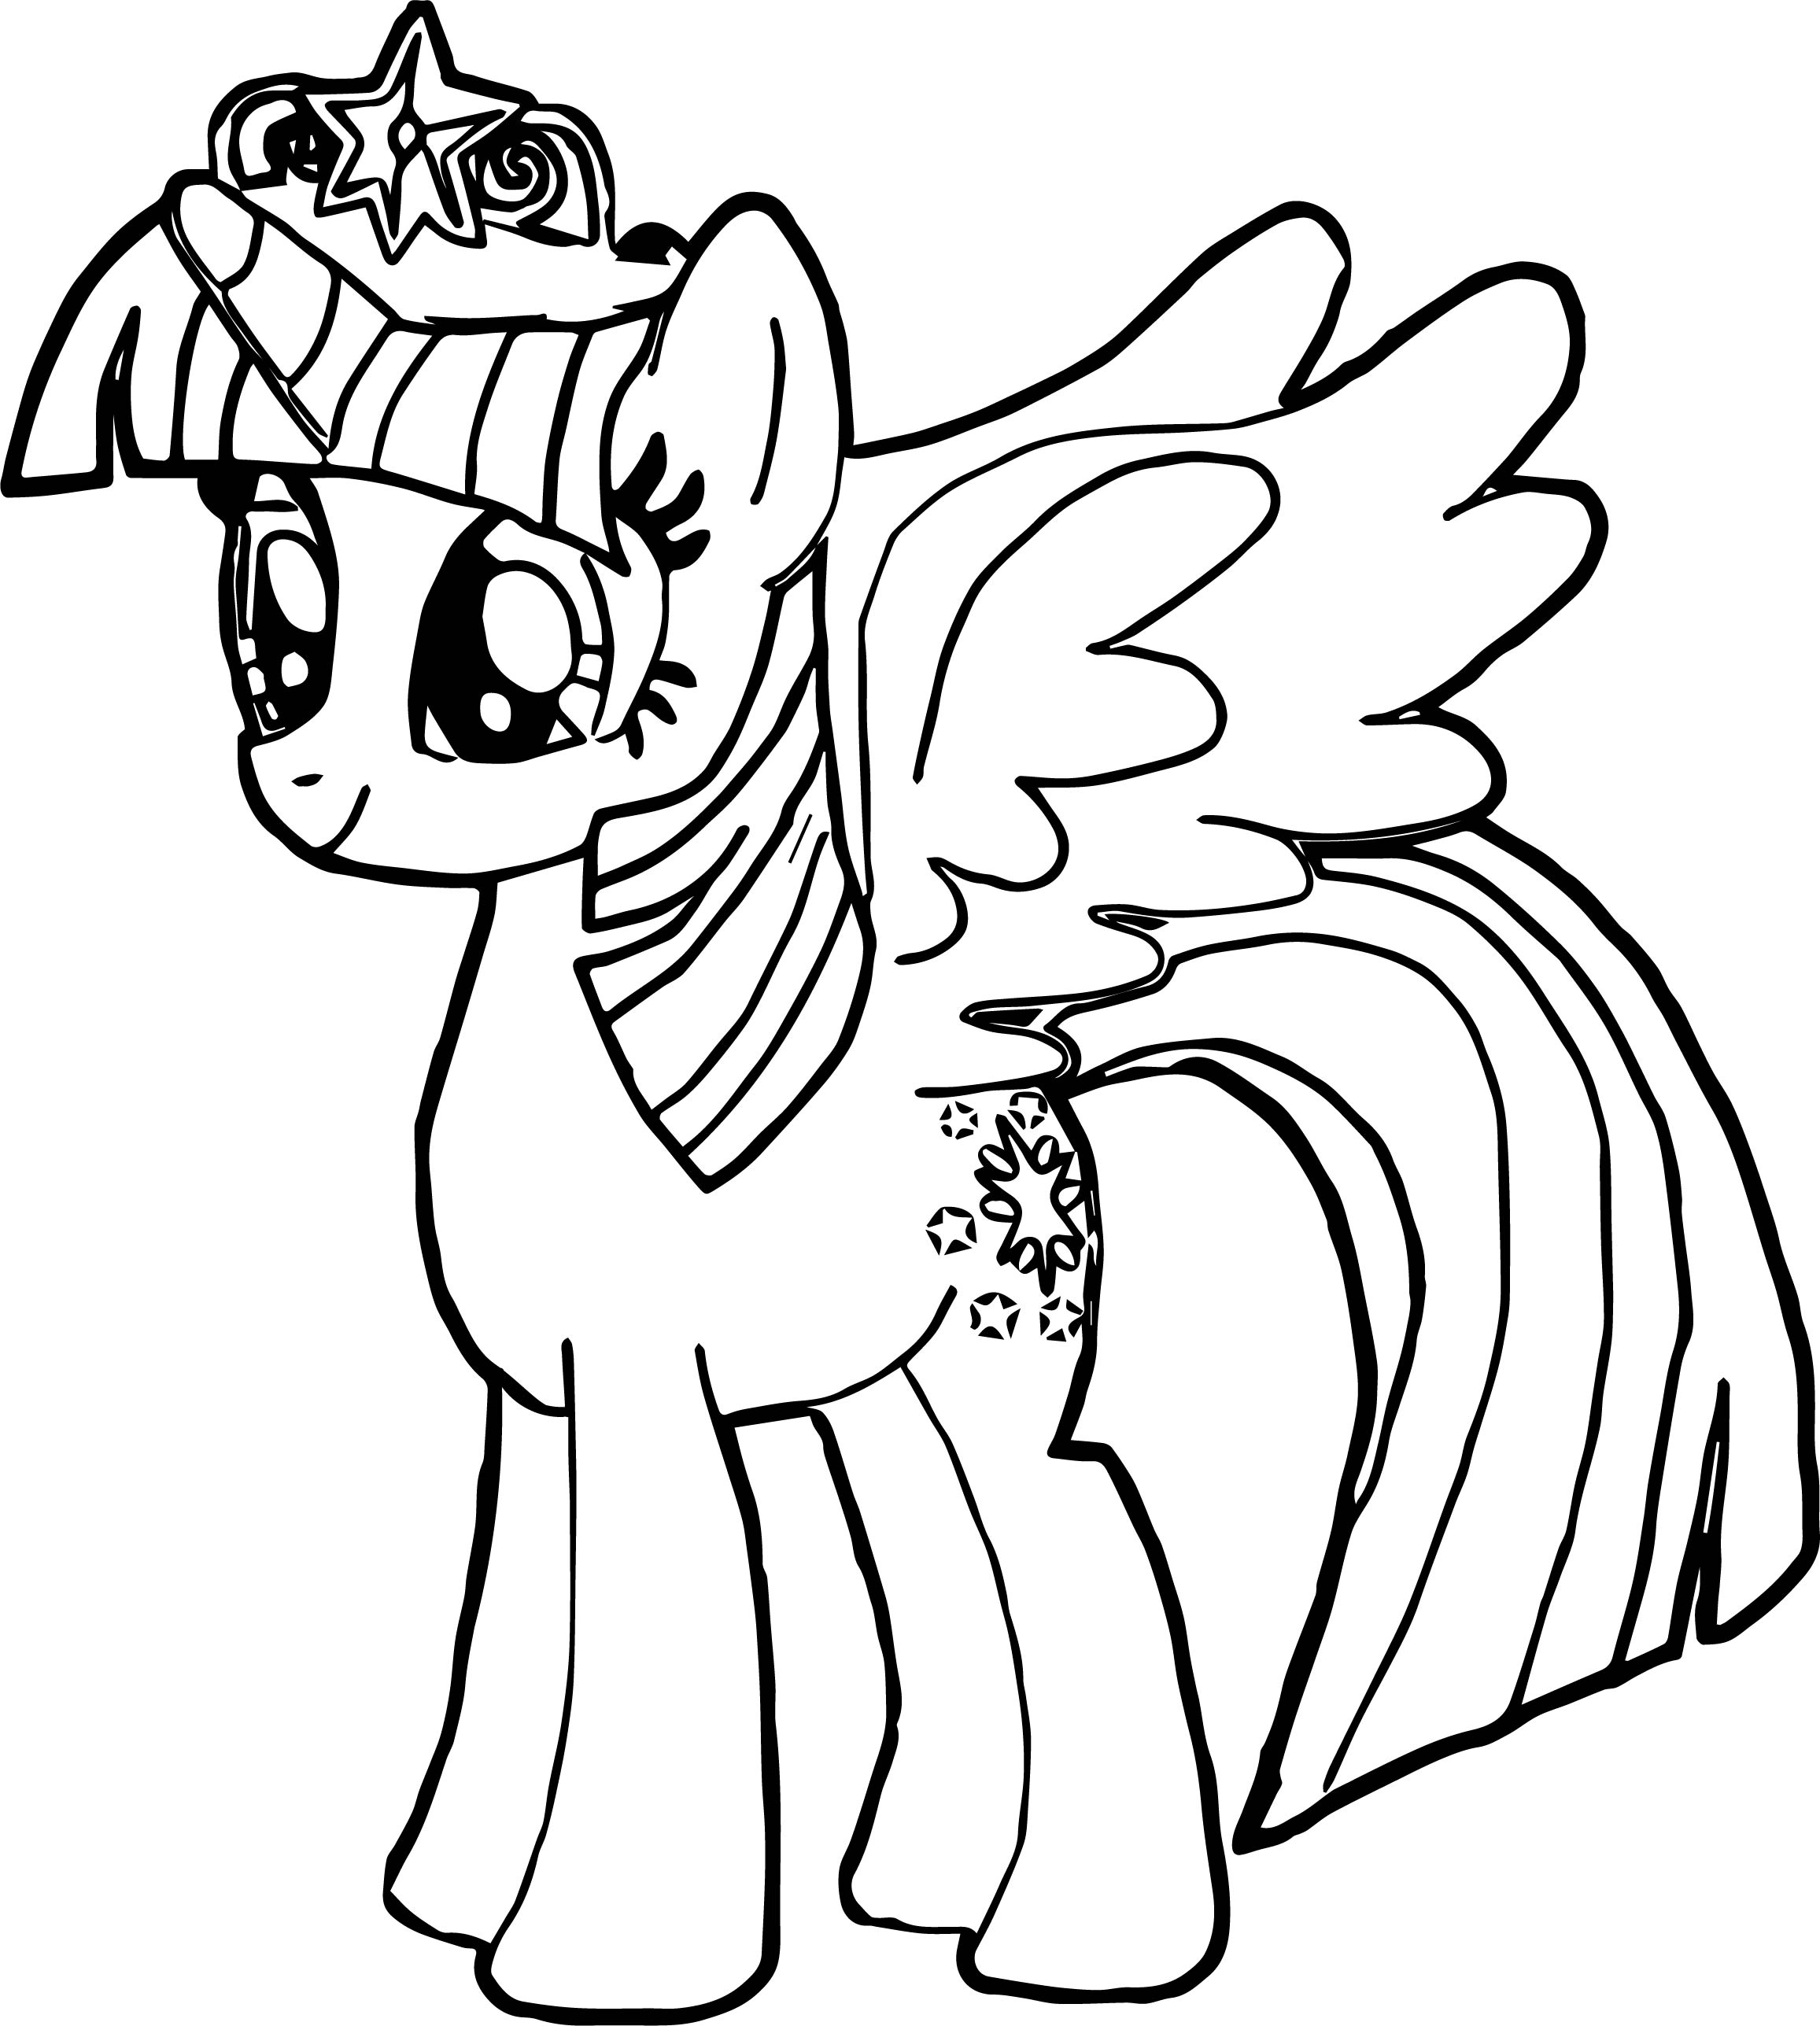 twilight sparkle coloring pages to print my little pony coloring pages twilight sparkle at twilight to pages print sparkle coloring